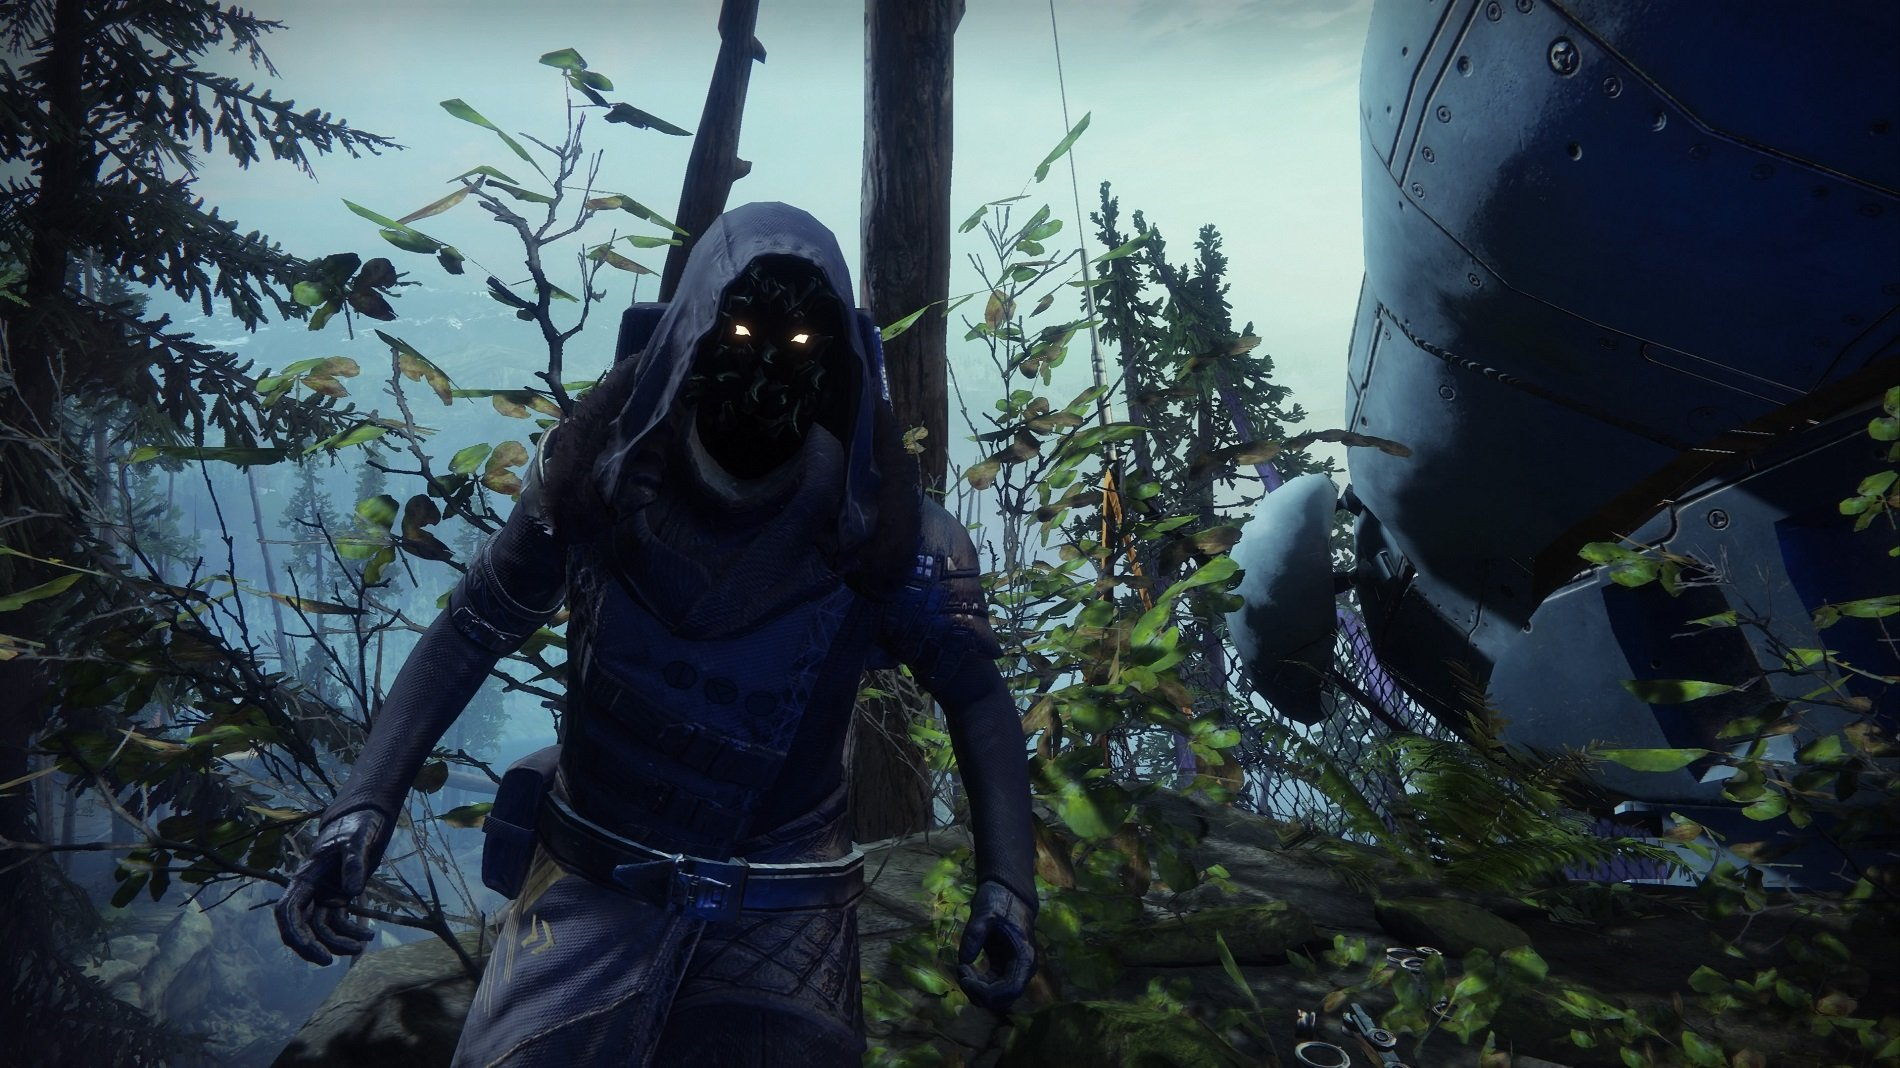 Where to find Xur in Destiny 2 - July 17, 2020